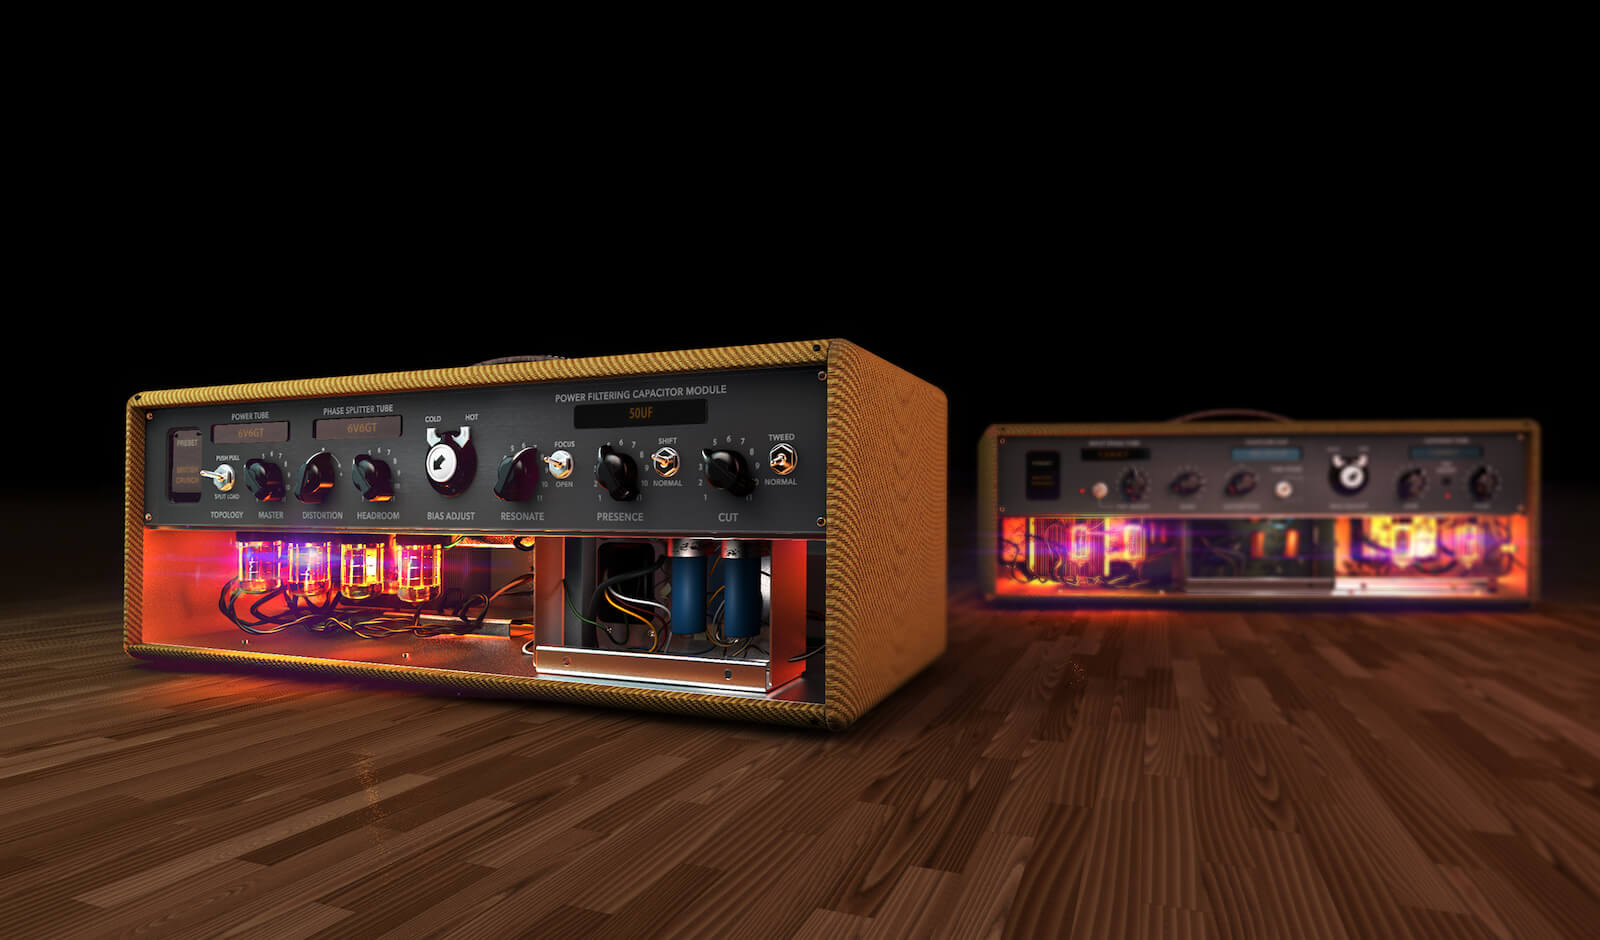 Bias Fx Authentic Analog Sounding Guitar Effects Positive Grid Download Image Op Amp Audio Amplifier Circuit Pc Android Iphone And Equipped With Double Precision Dual Signal Path It Combines The Sonic Attributes Of Two Different Sets Amplifiers Speaker Cabinets